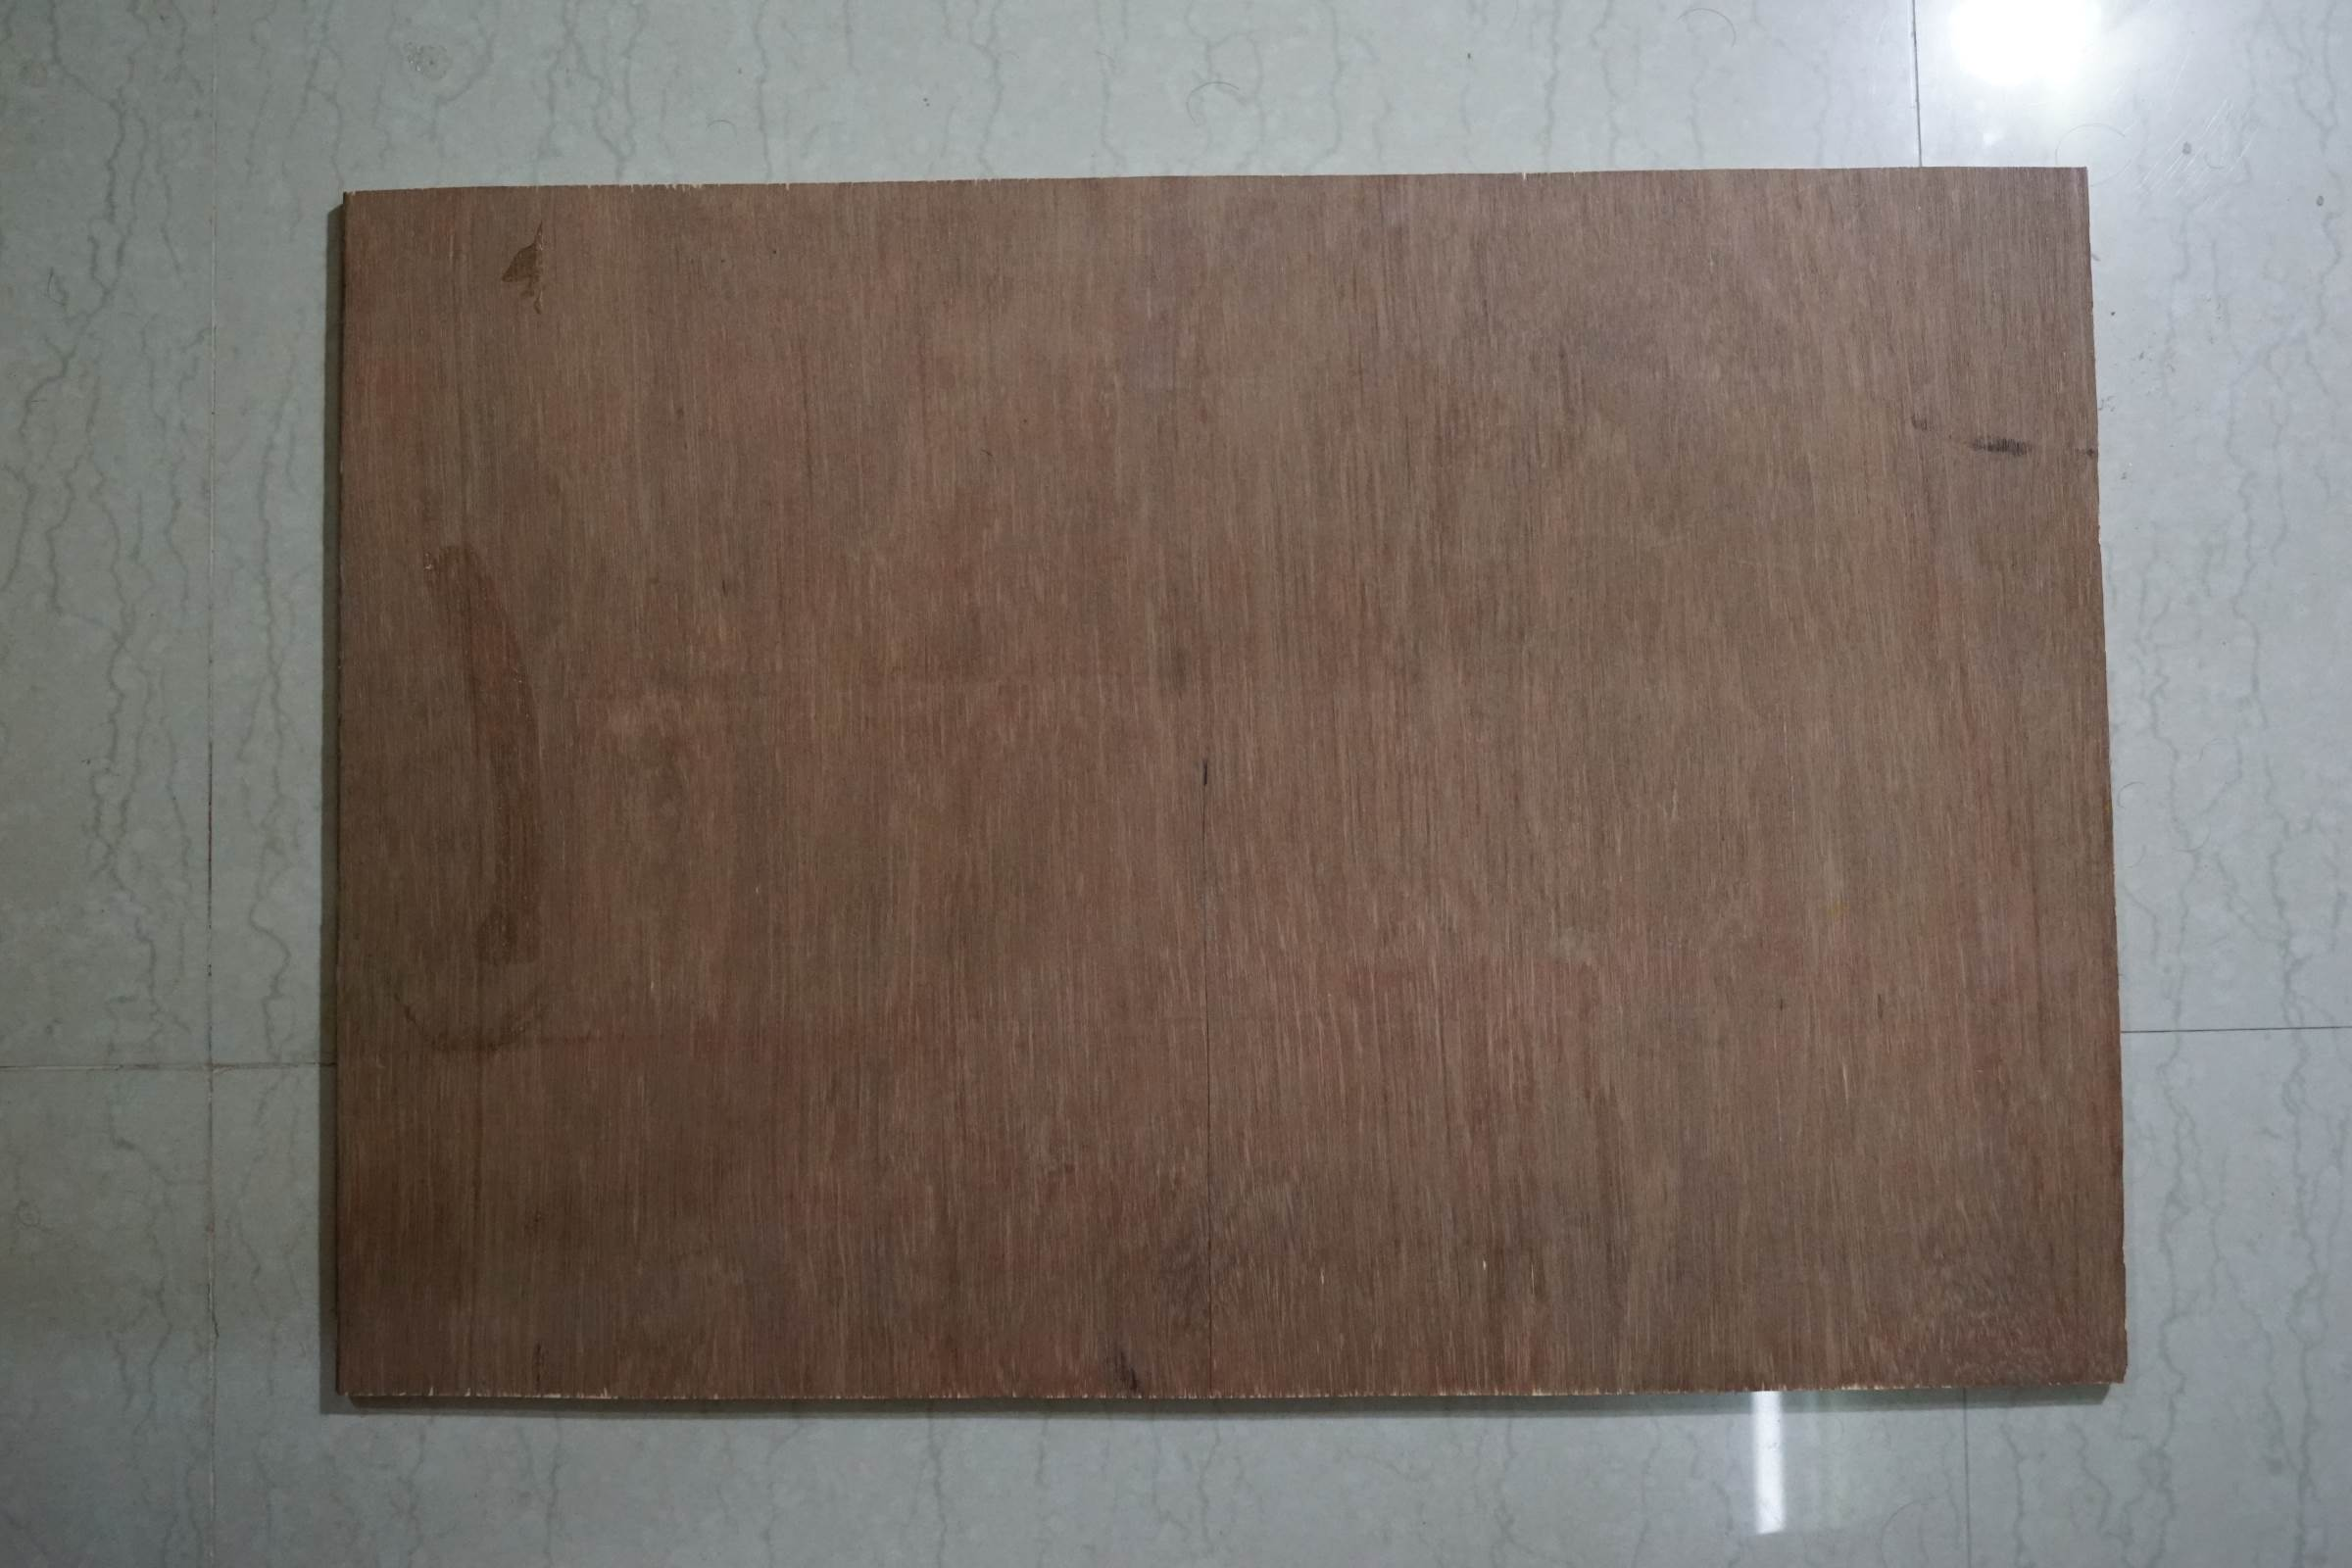 50cm x 60cm Ply Wood for Drawing Machne's Base